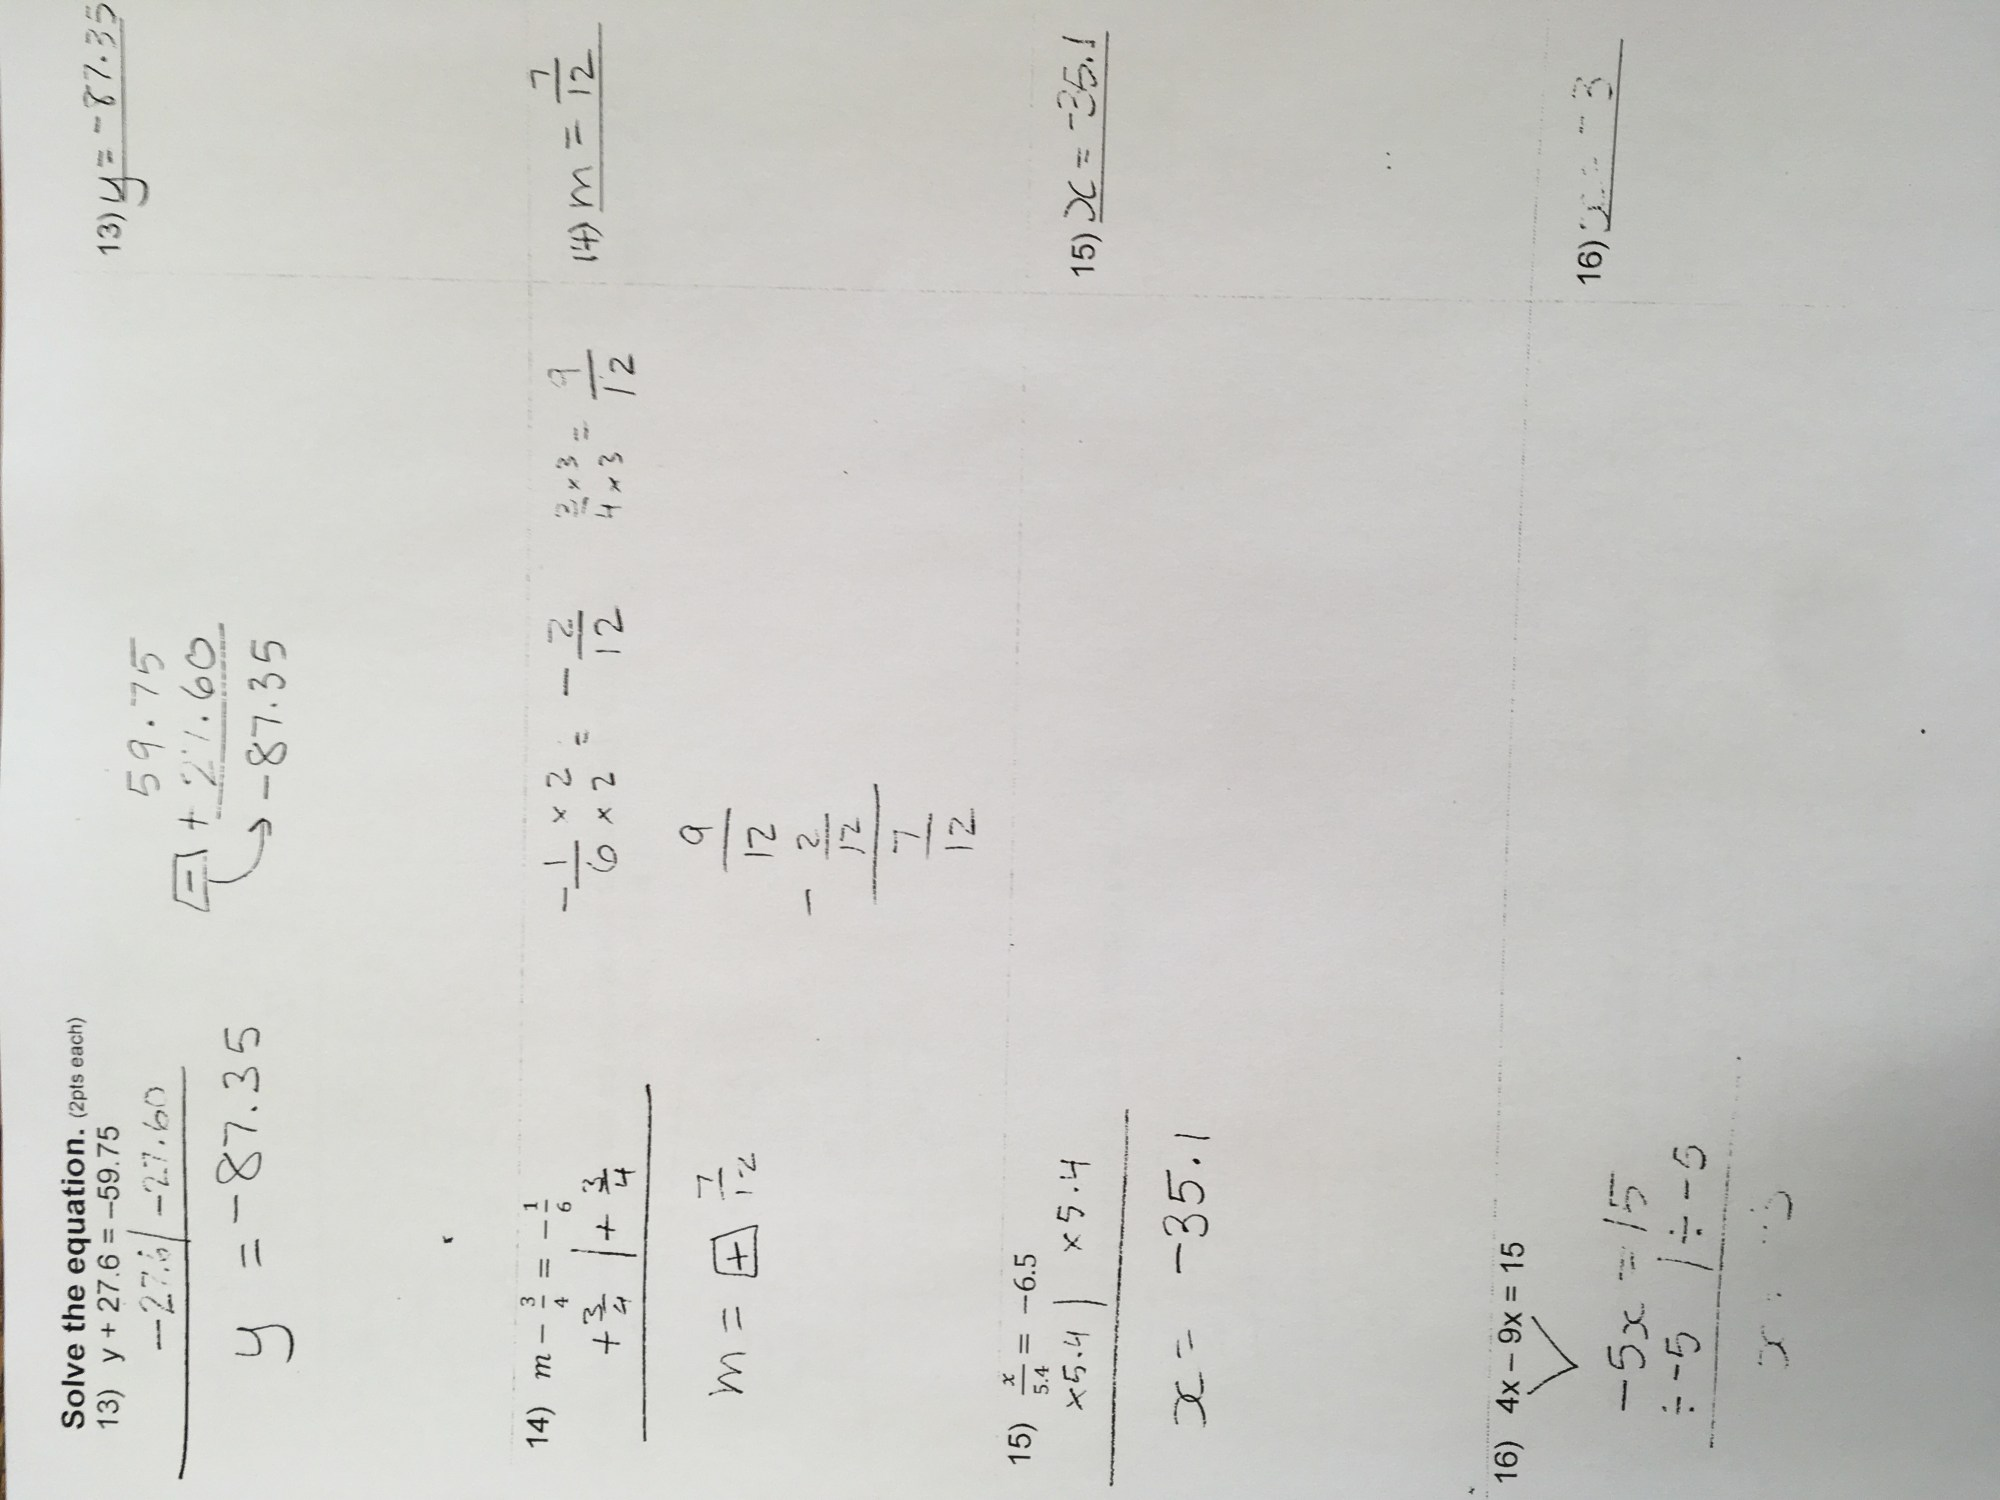 hight resolution of Grades 7 \u0026 8/ Middle School Math - Page 26 of 73 -